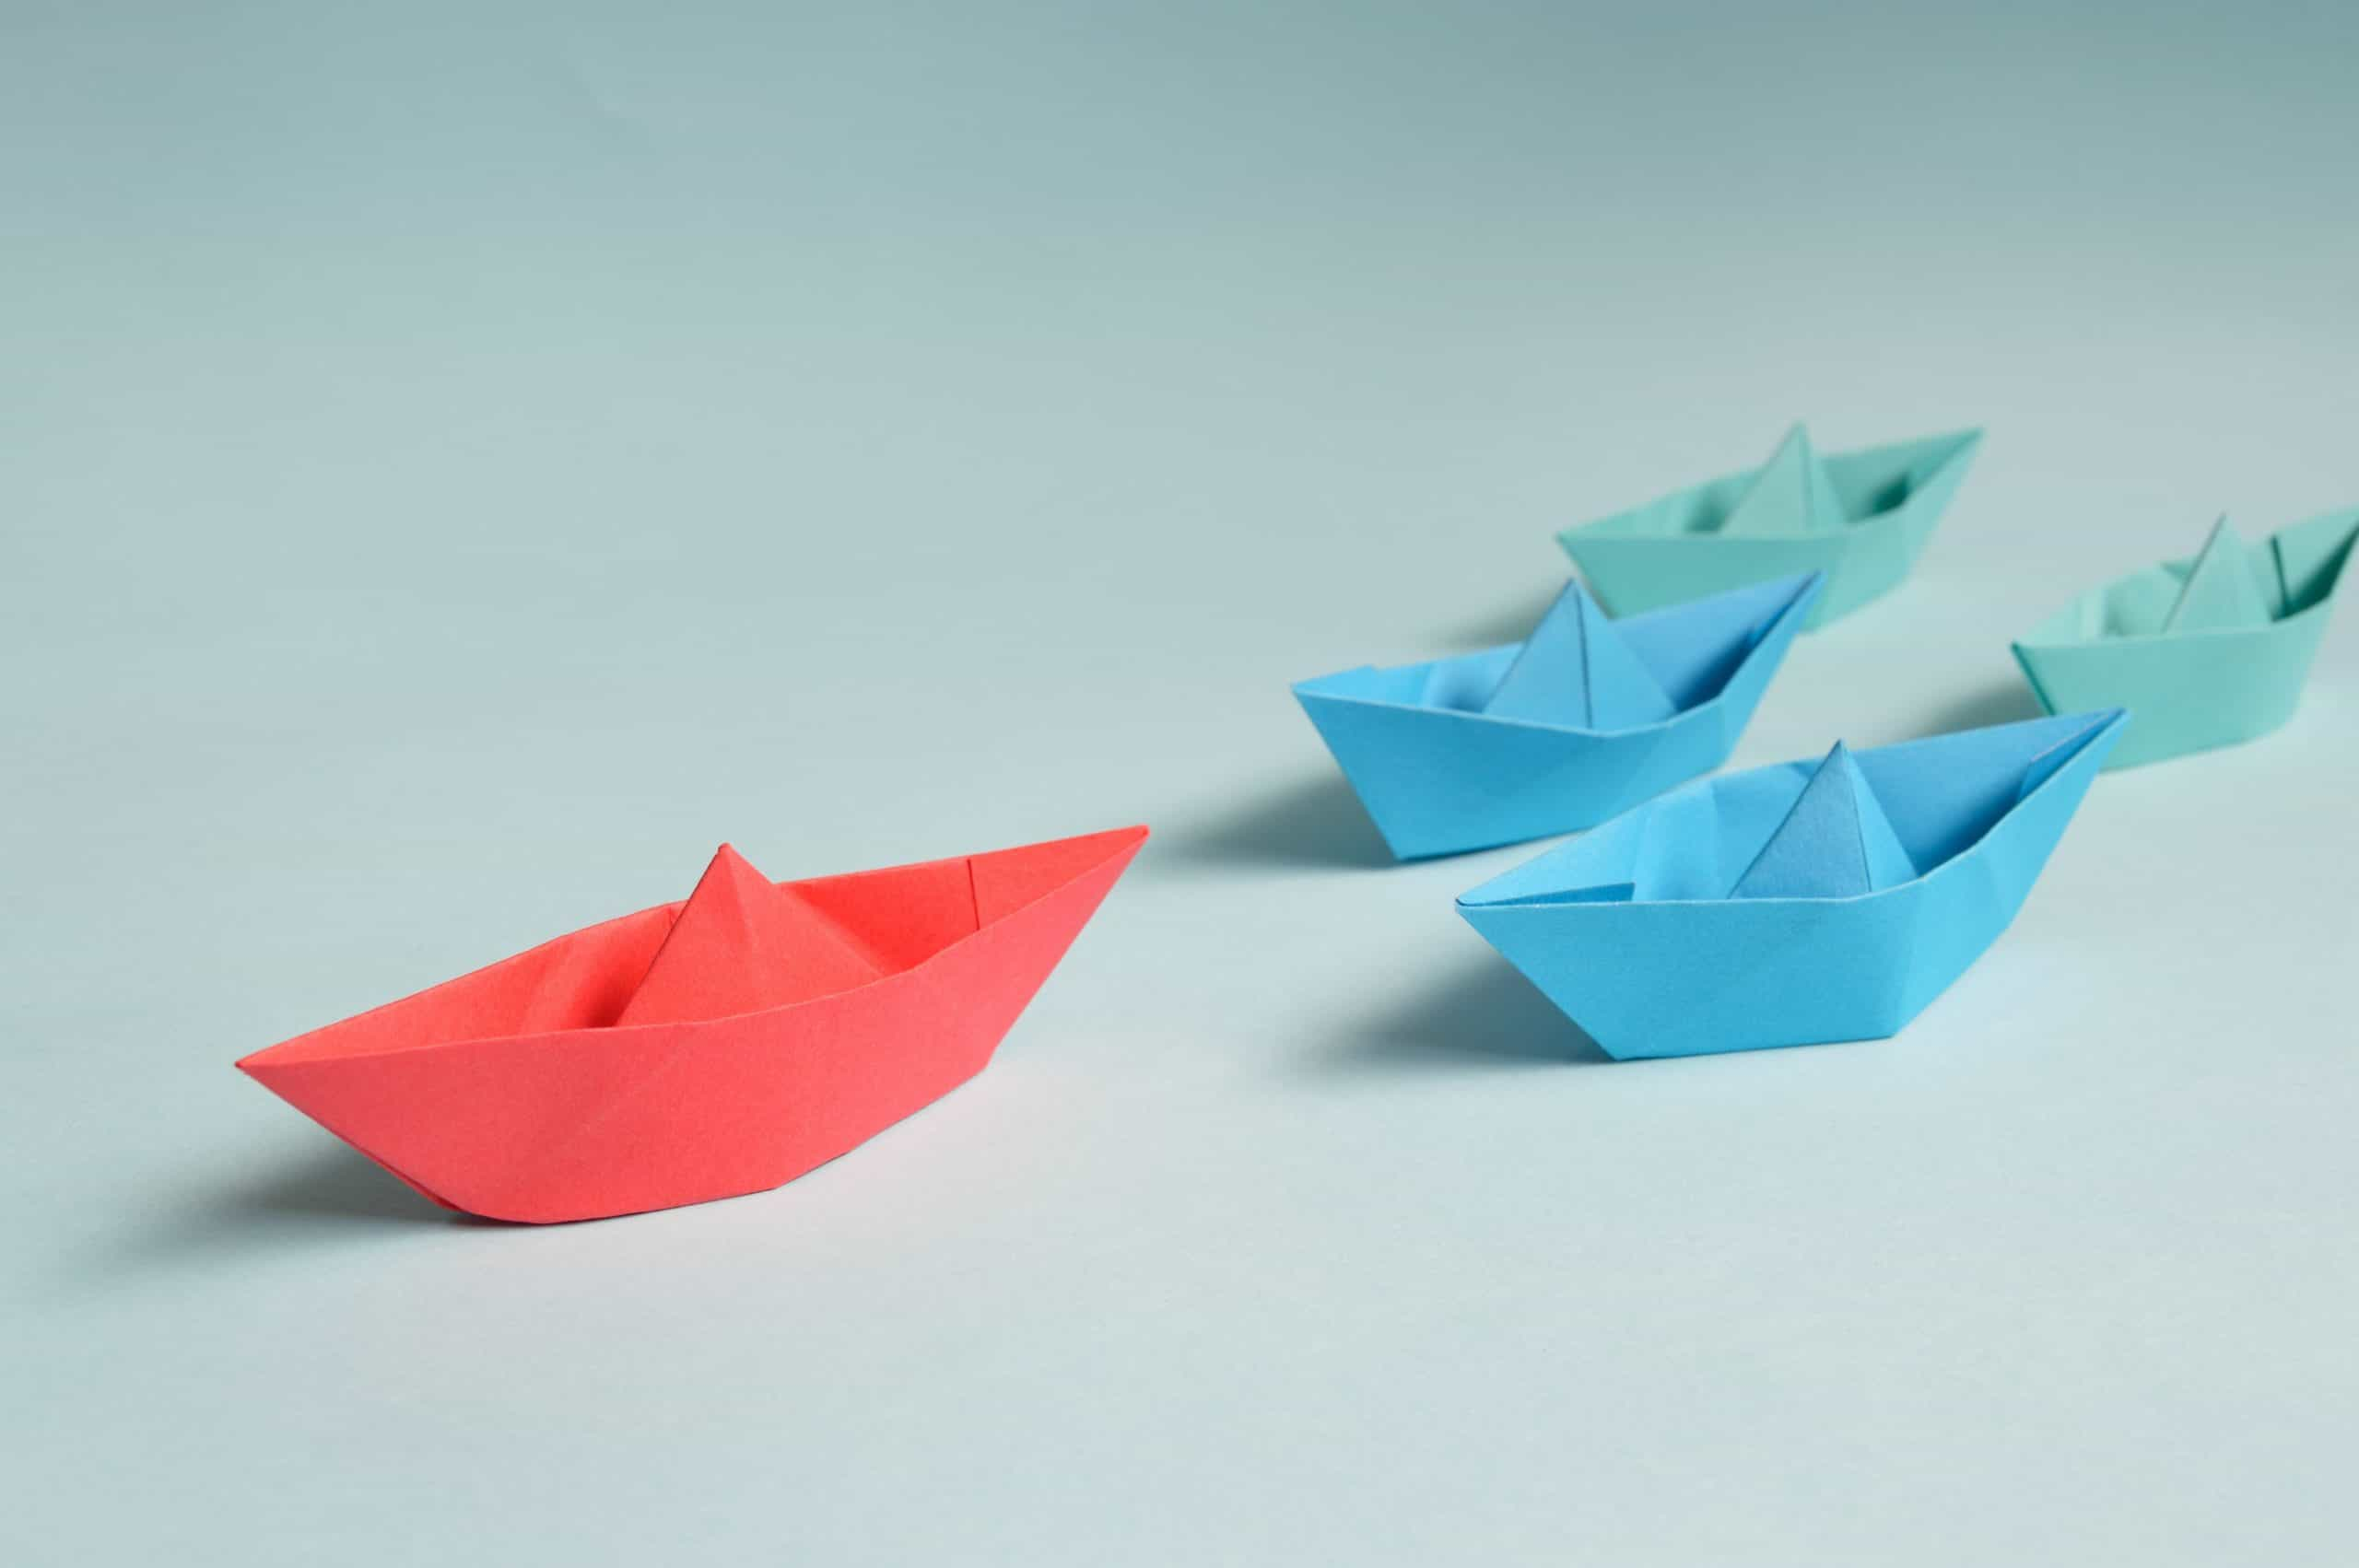 Blue and red origami boats